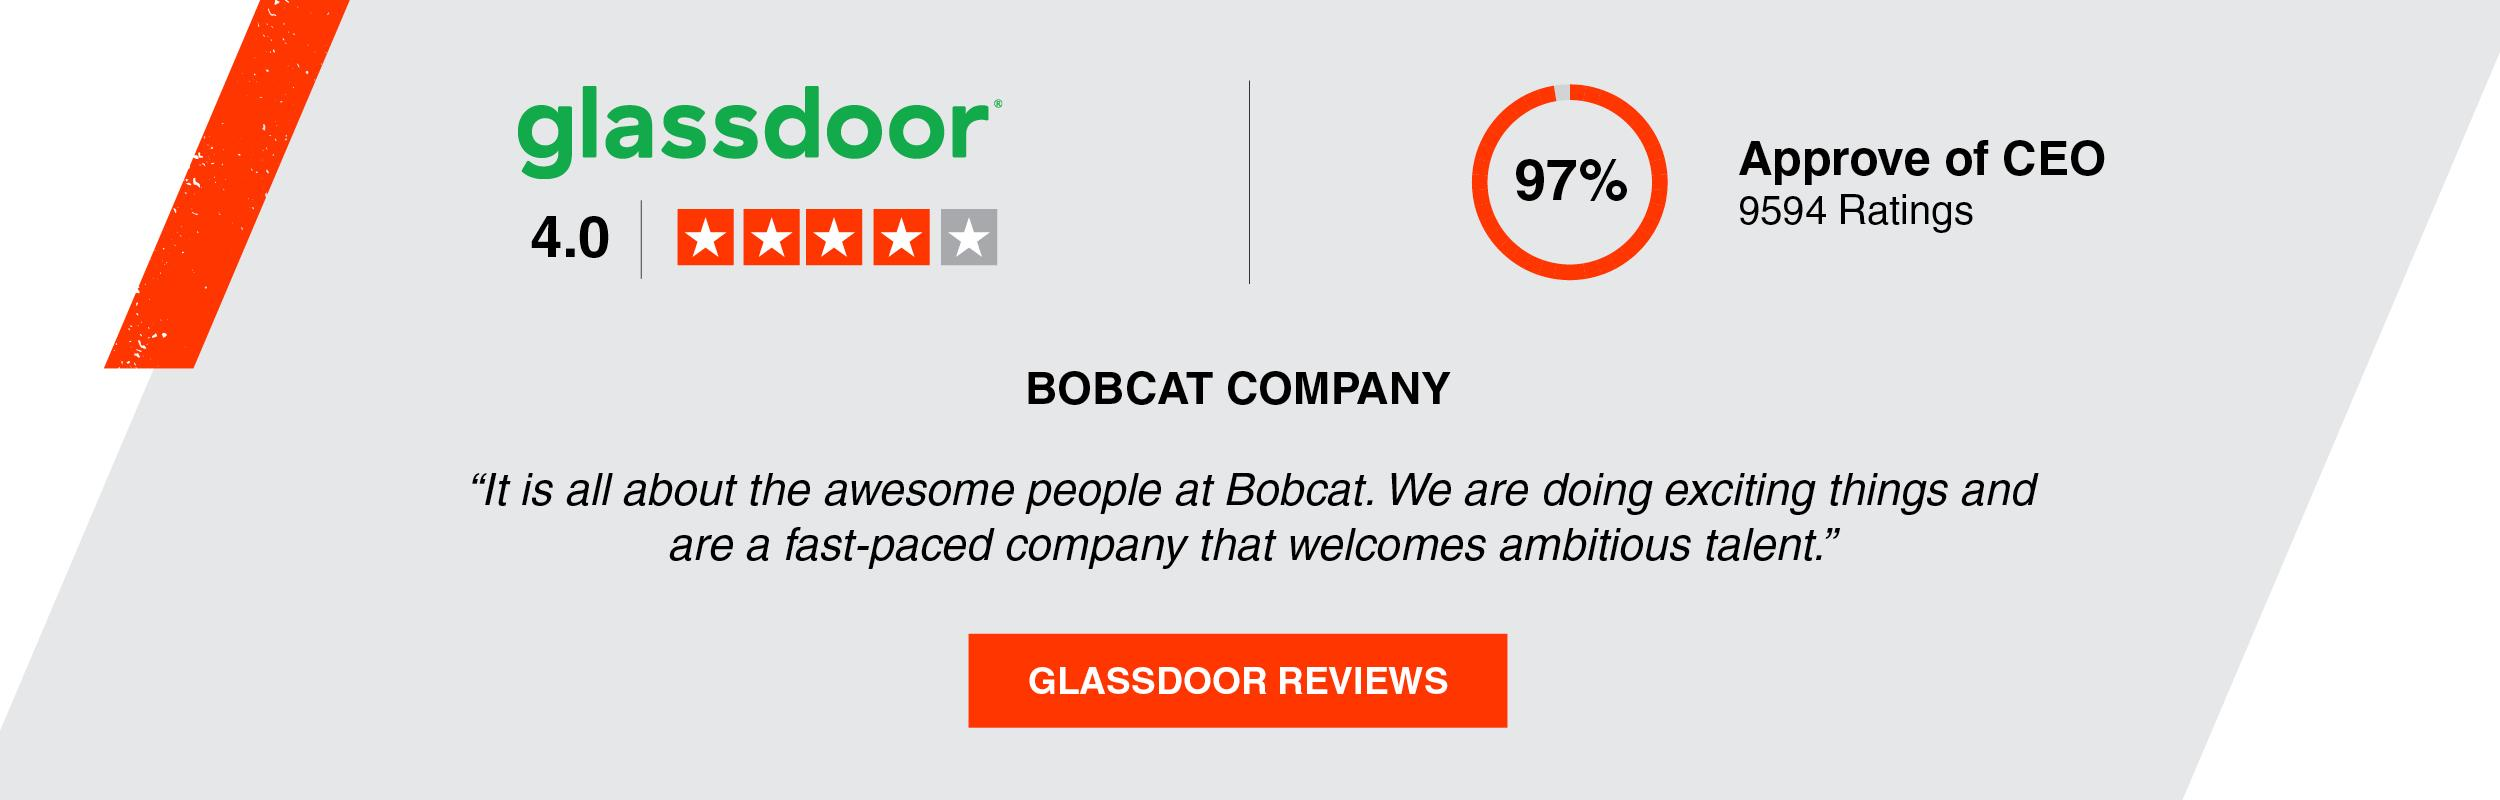 Bobcat Company Glassdoor Reviews